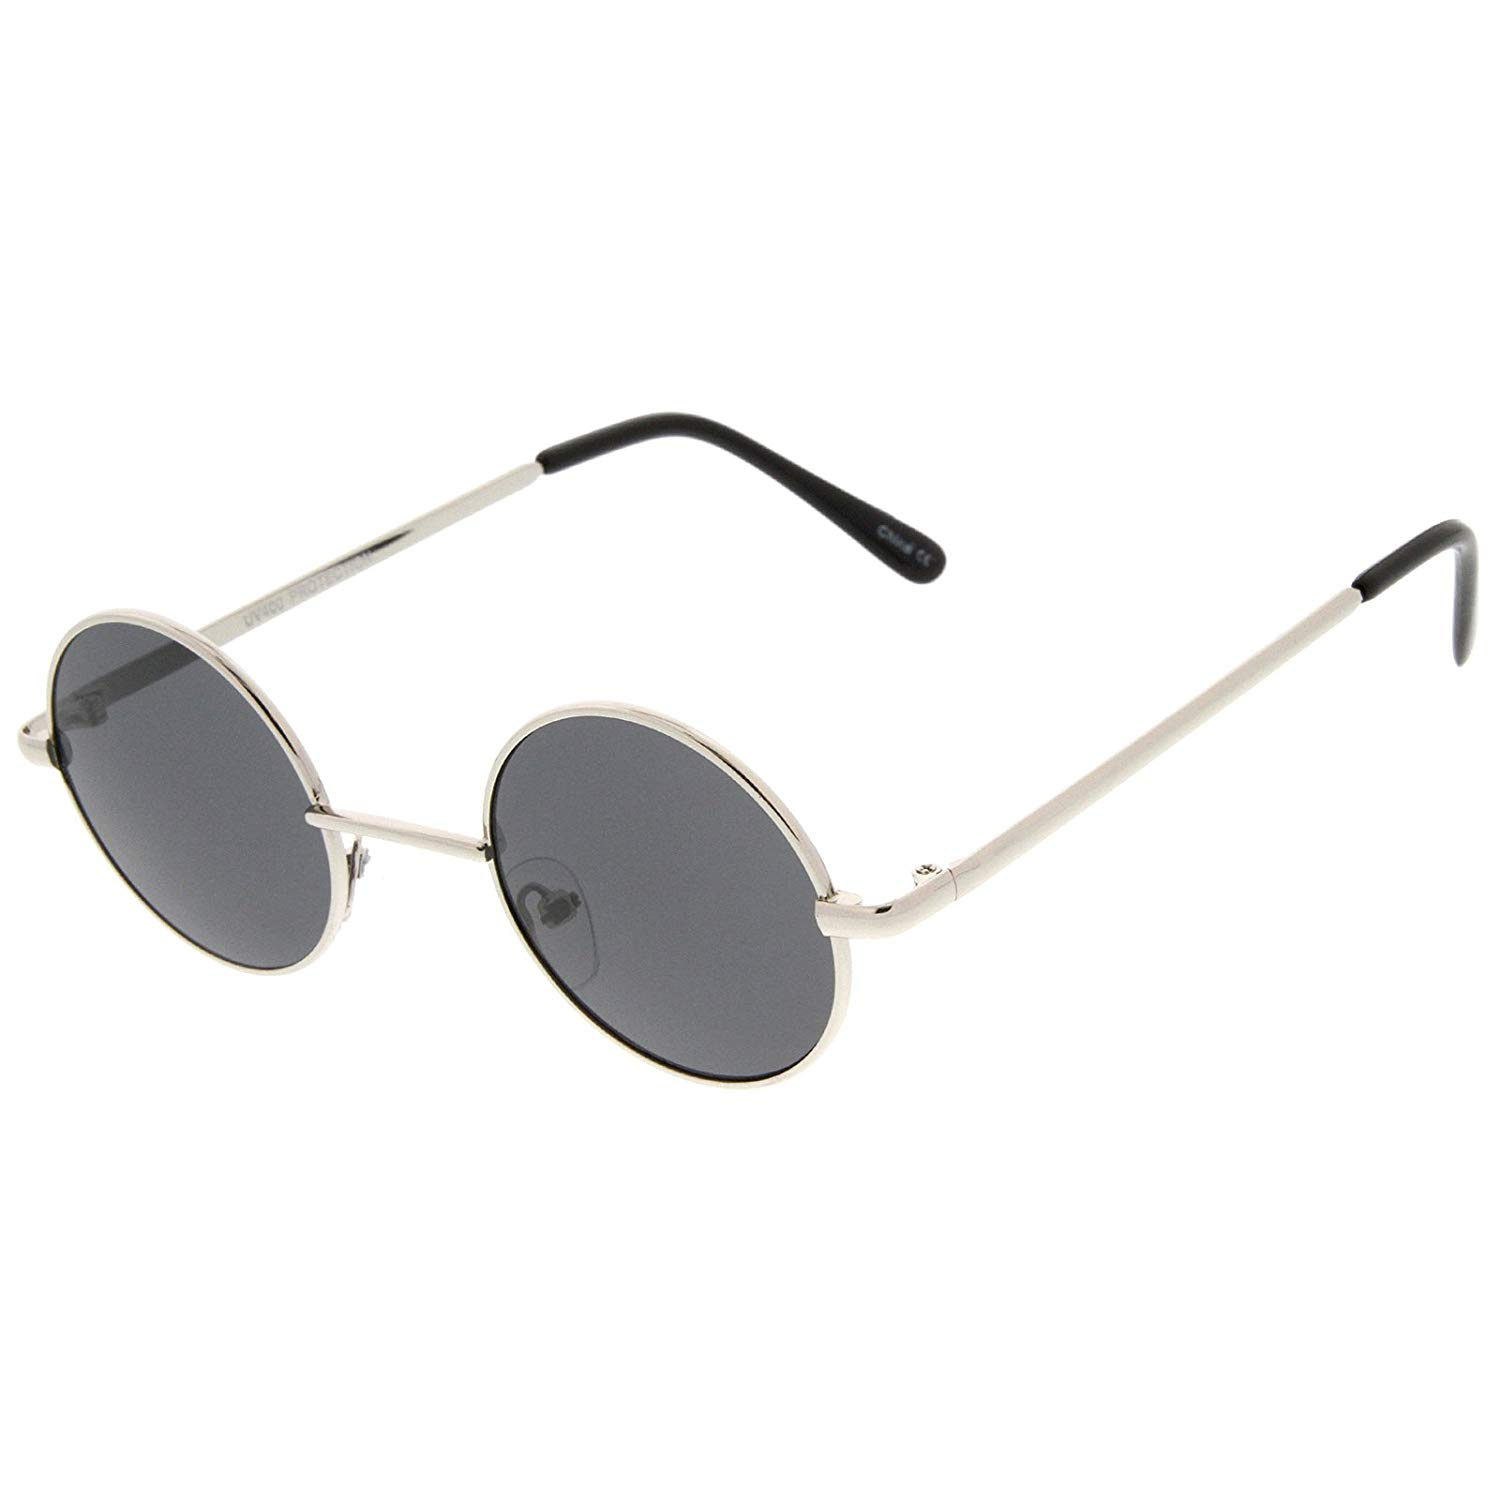 7a064205d80 Get Quotations · Small Retro Lennon Inspired Style Neutral-Colored Lens Round  Metal Sunglasses 41mm